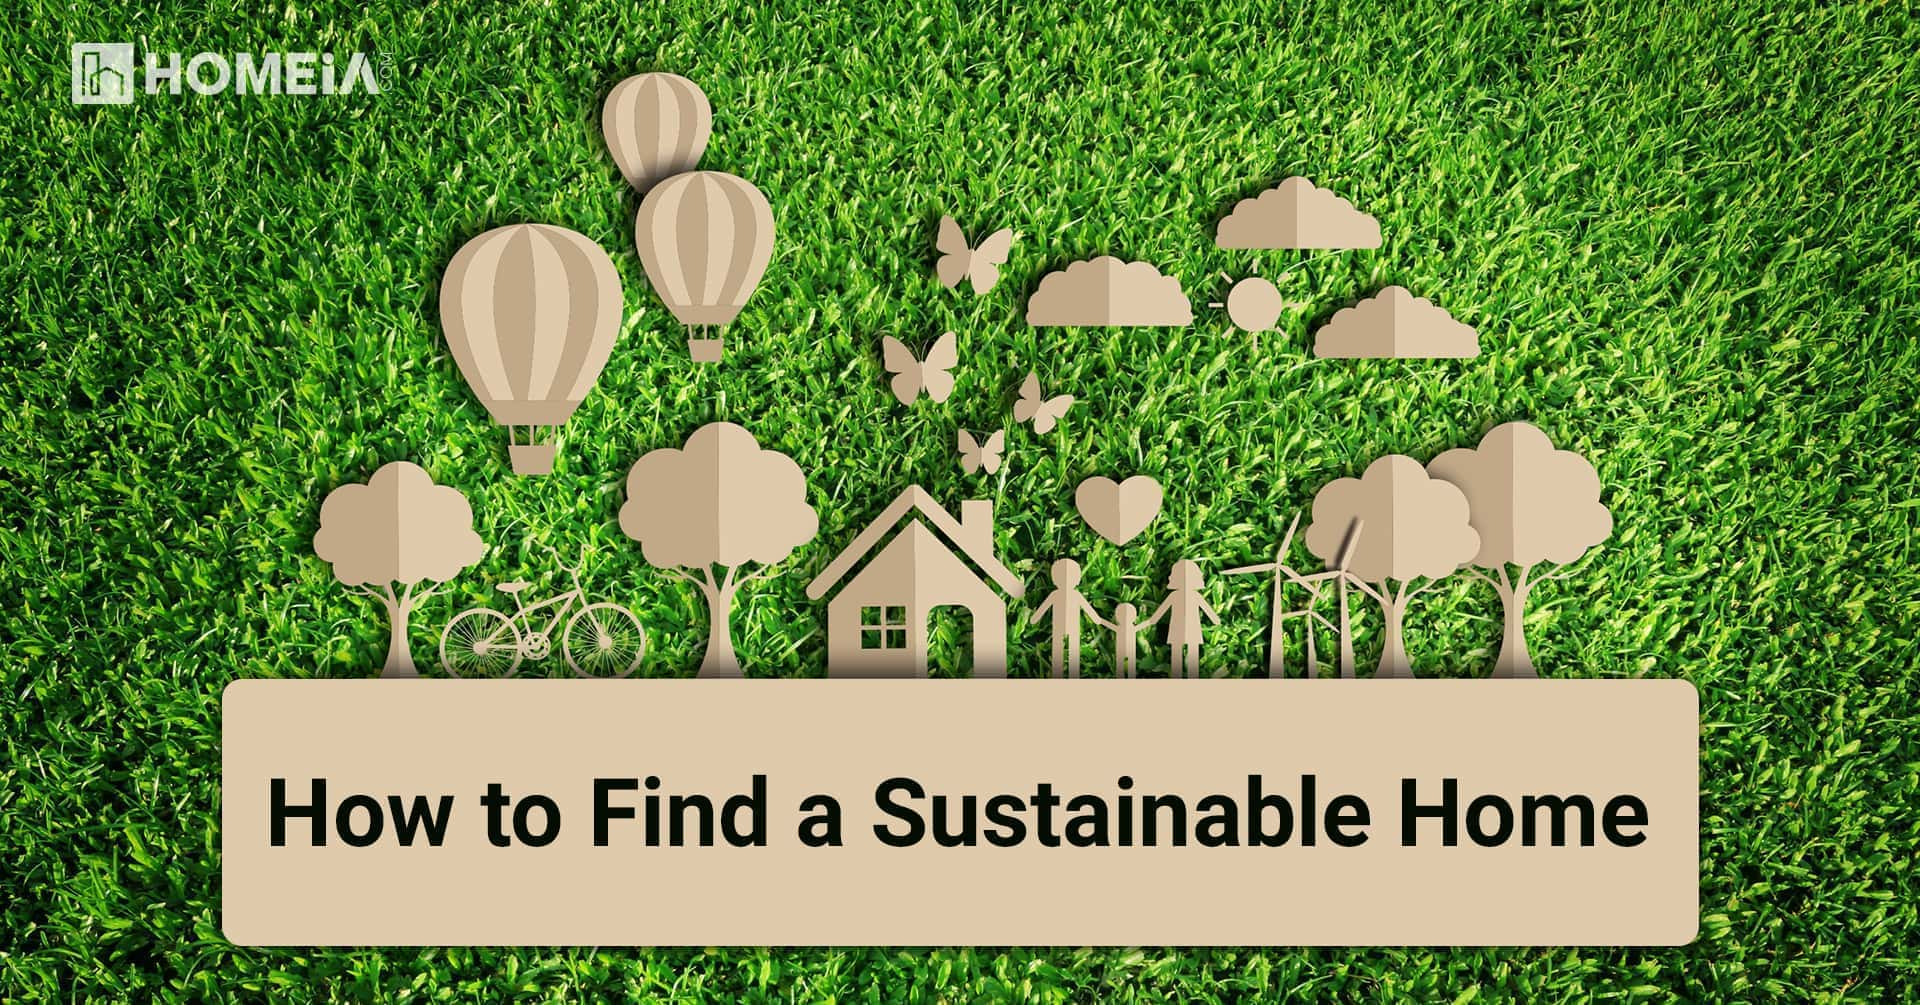 8 Things to Look For When Evaluating a Home's Sustainability